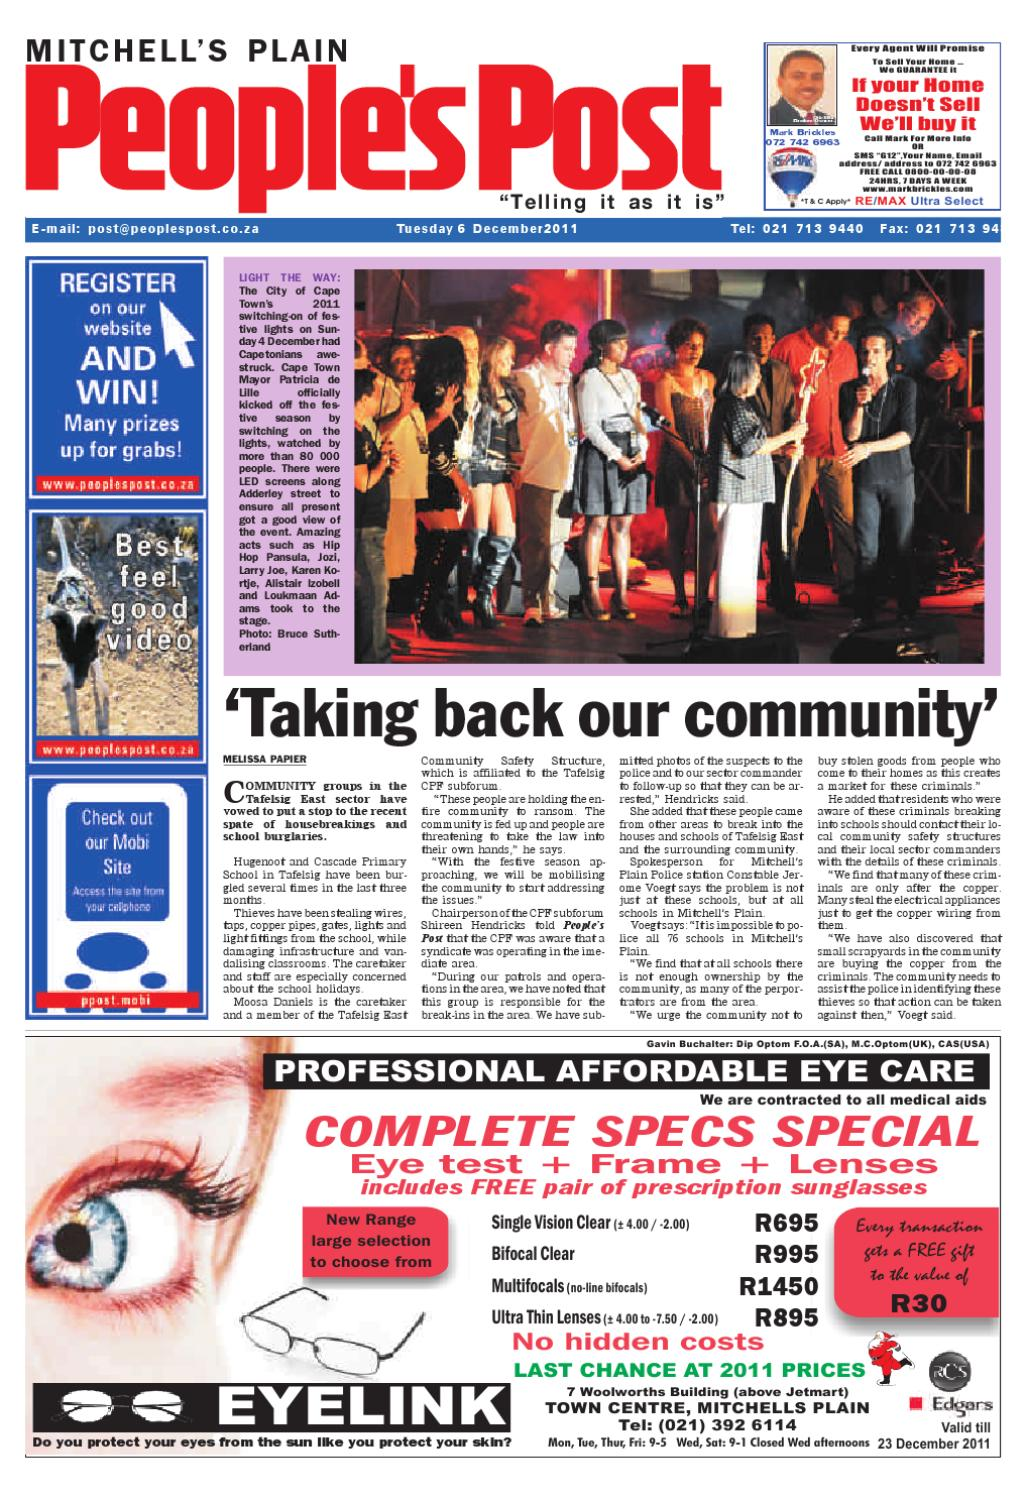 Peoples Post Mitchells Plain 6 December 2011 by People's